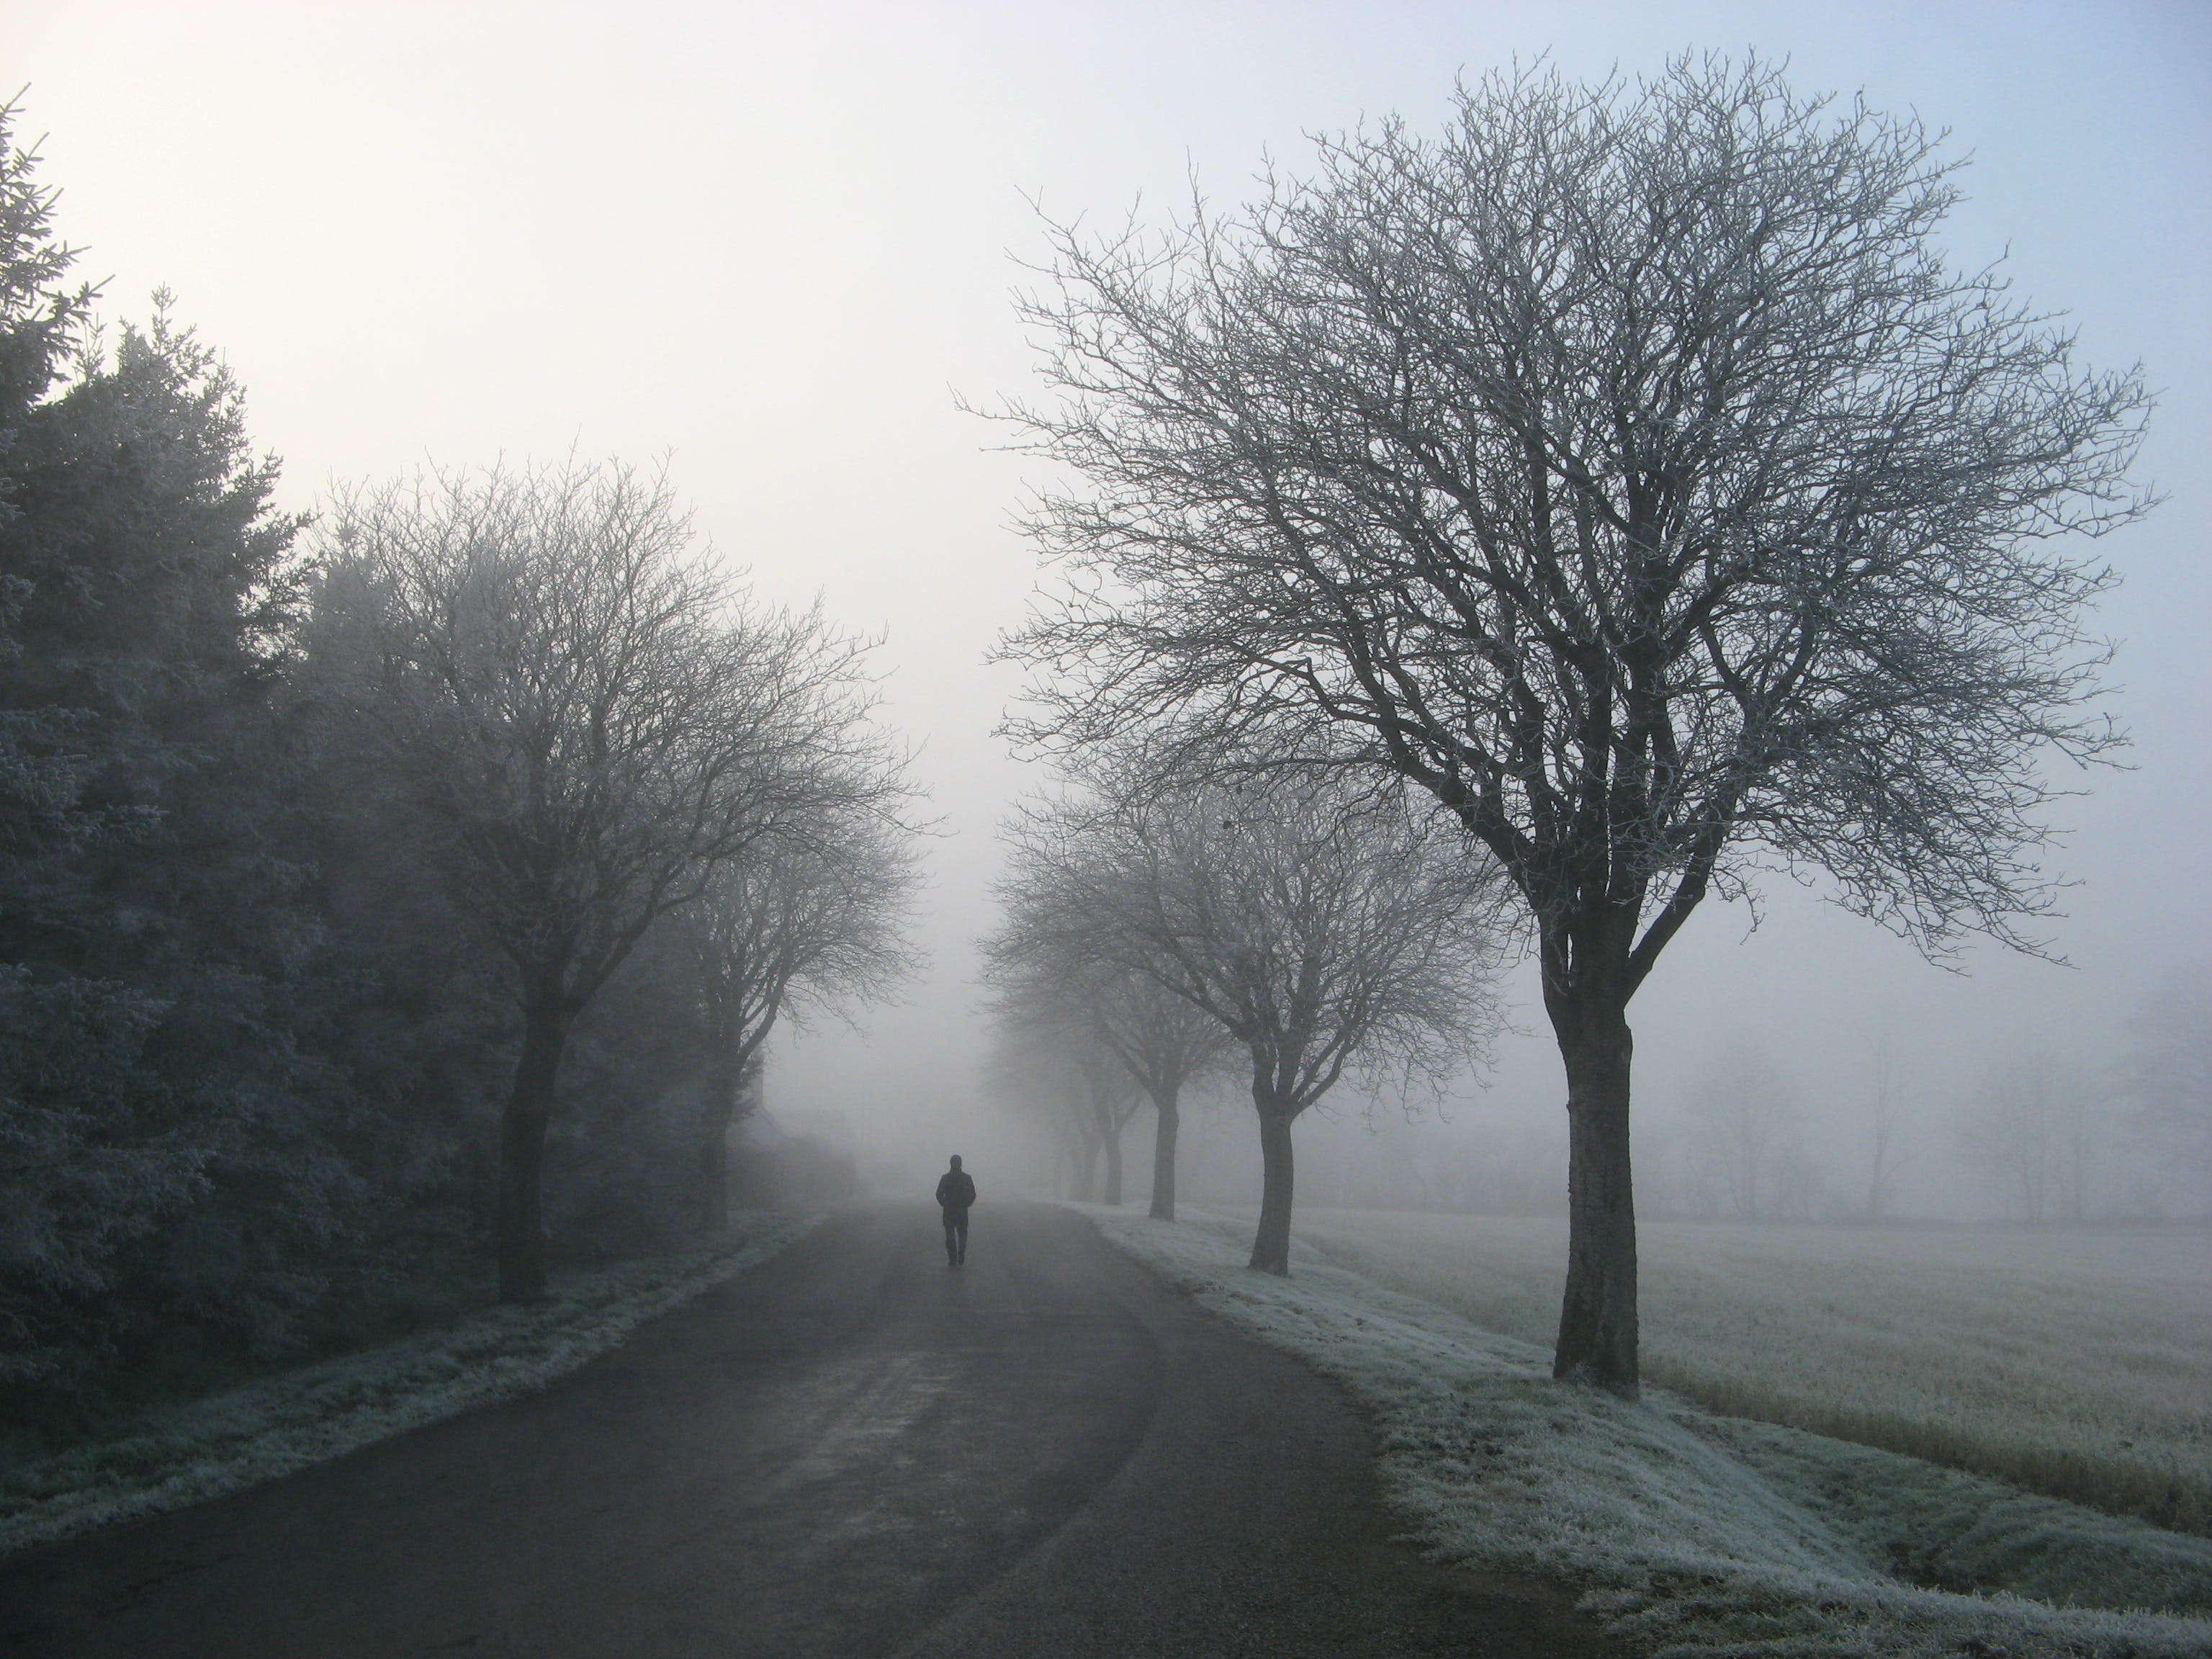 Person Walking on Road Between Trees